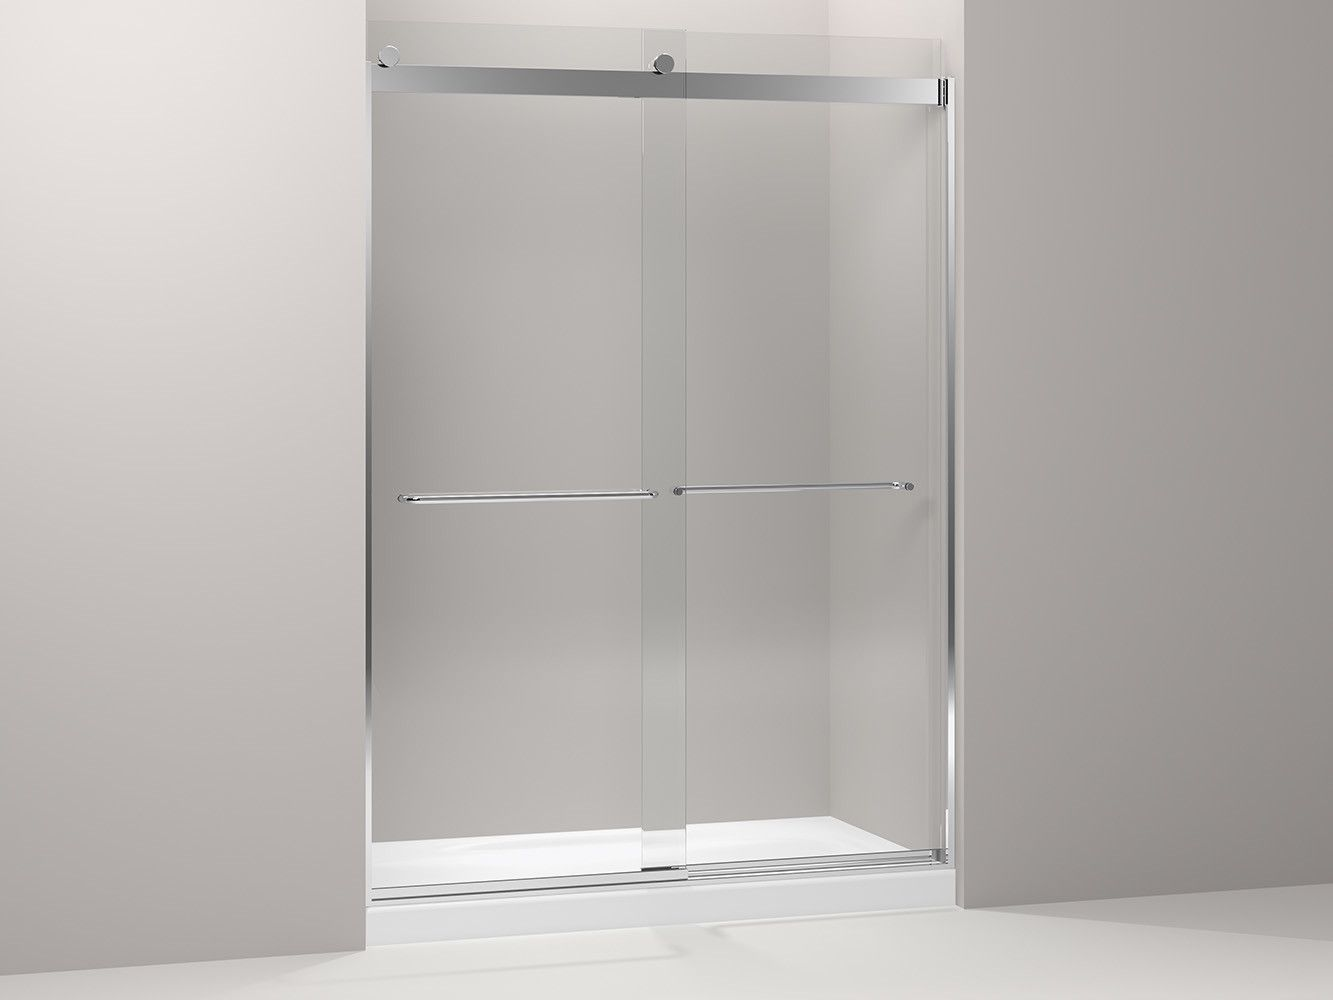 Levity Rear Sliding Glass Panel And Assembly Kit For Shower Door